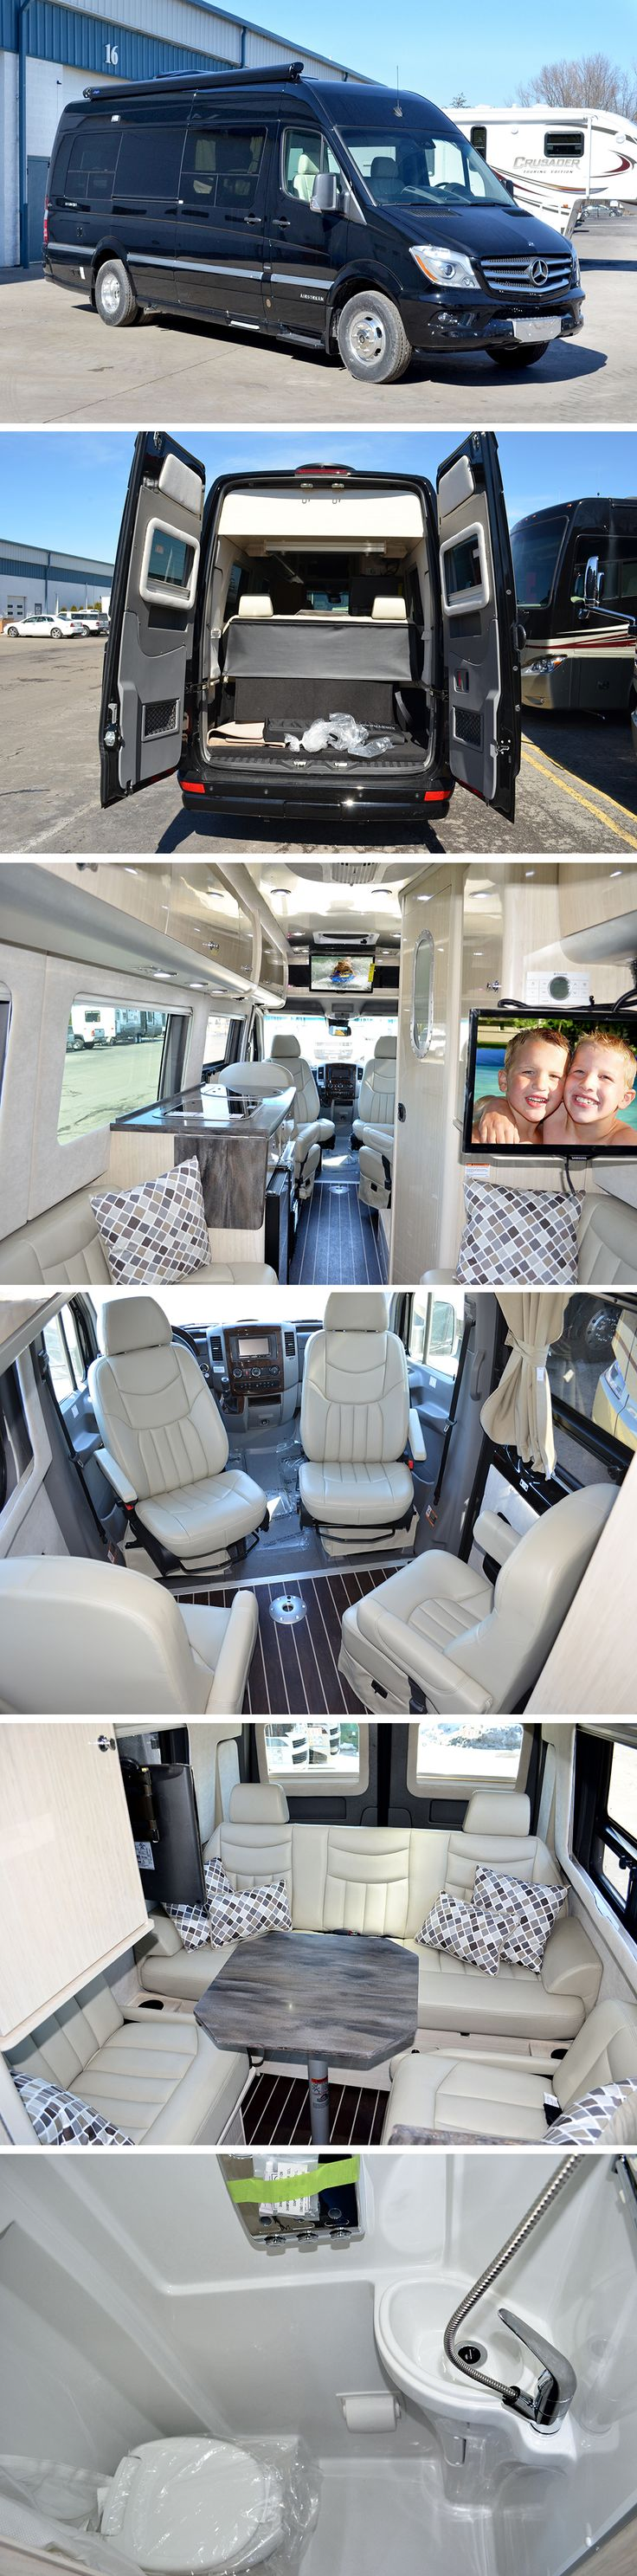 New 2014 Airstream Interstate 3500 Class B The Interstate Lounge EXT seats up to nine and is perfect for travelers in search of versatility and space. It offers tremendous flexibility, room to socialize, and sleeping accommodations that will make you feel right at home. If you're looking for a large galley area, open floor space, and easy access to storage, you'll find it in the Lounge EXT.